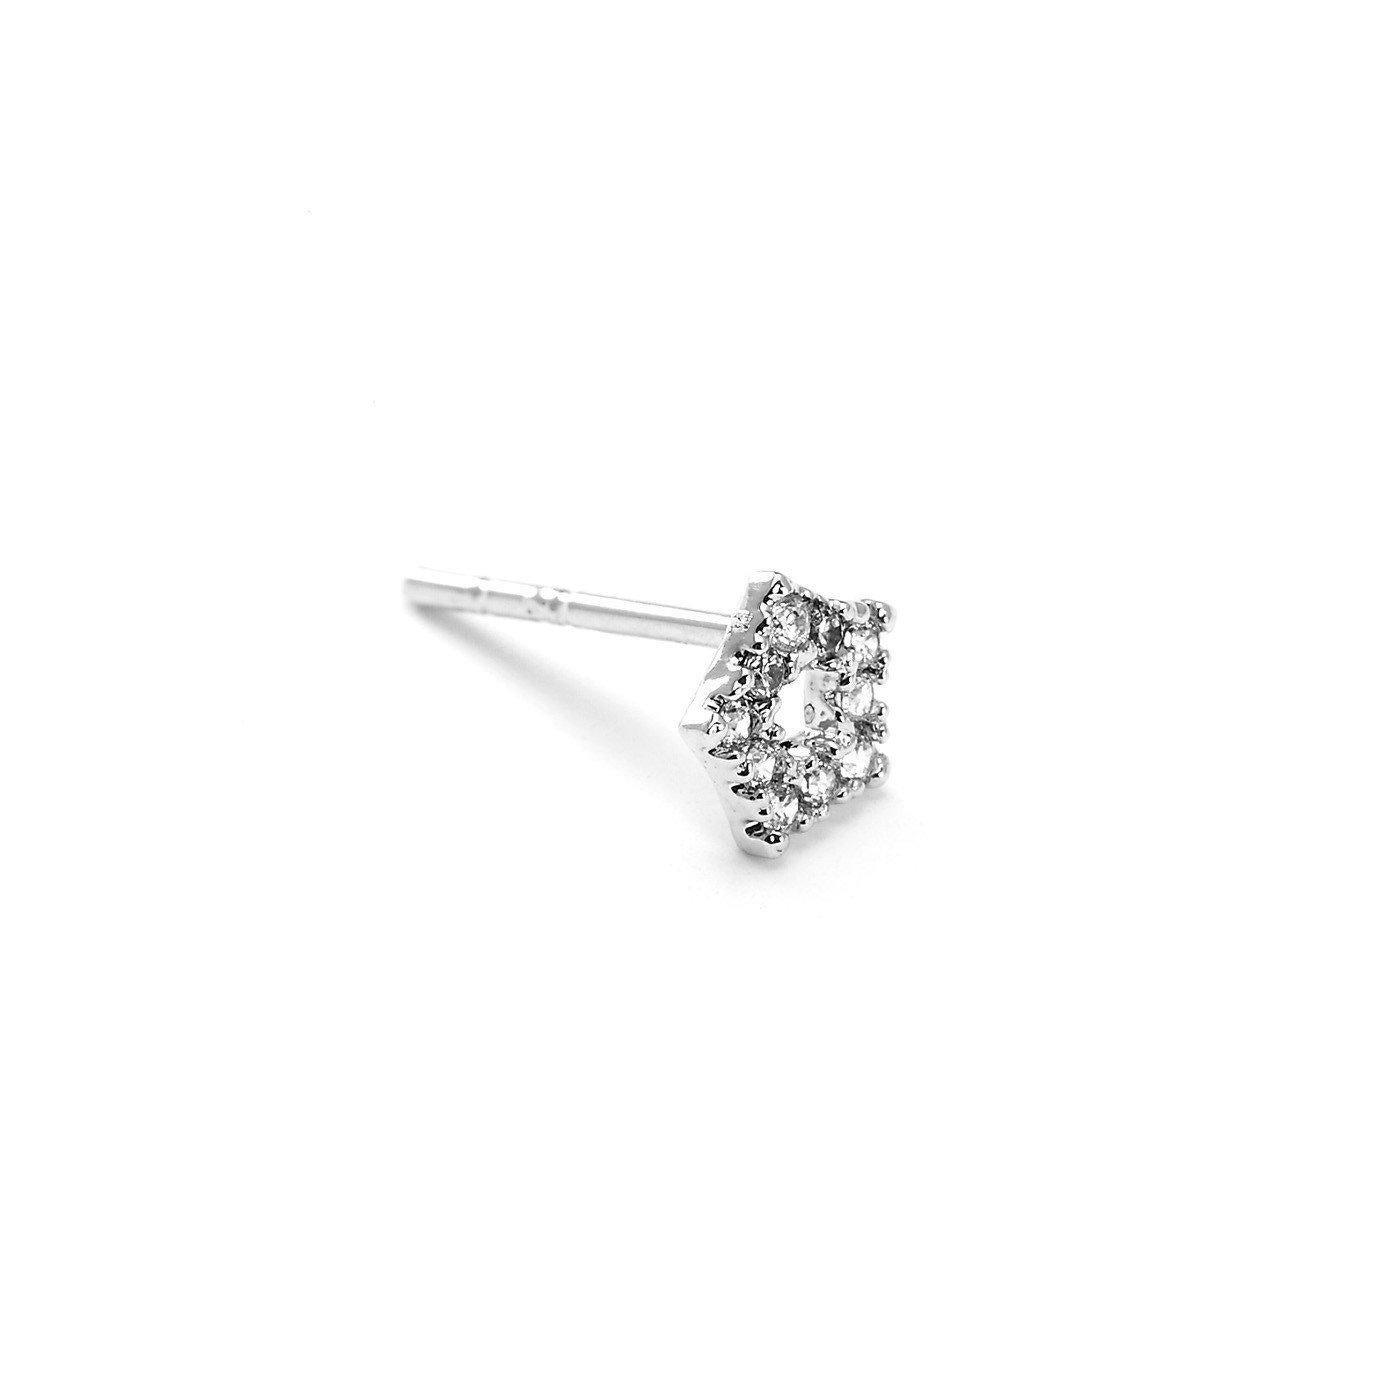 Hester Hexagon Charm Nose Pin-Blinglane